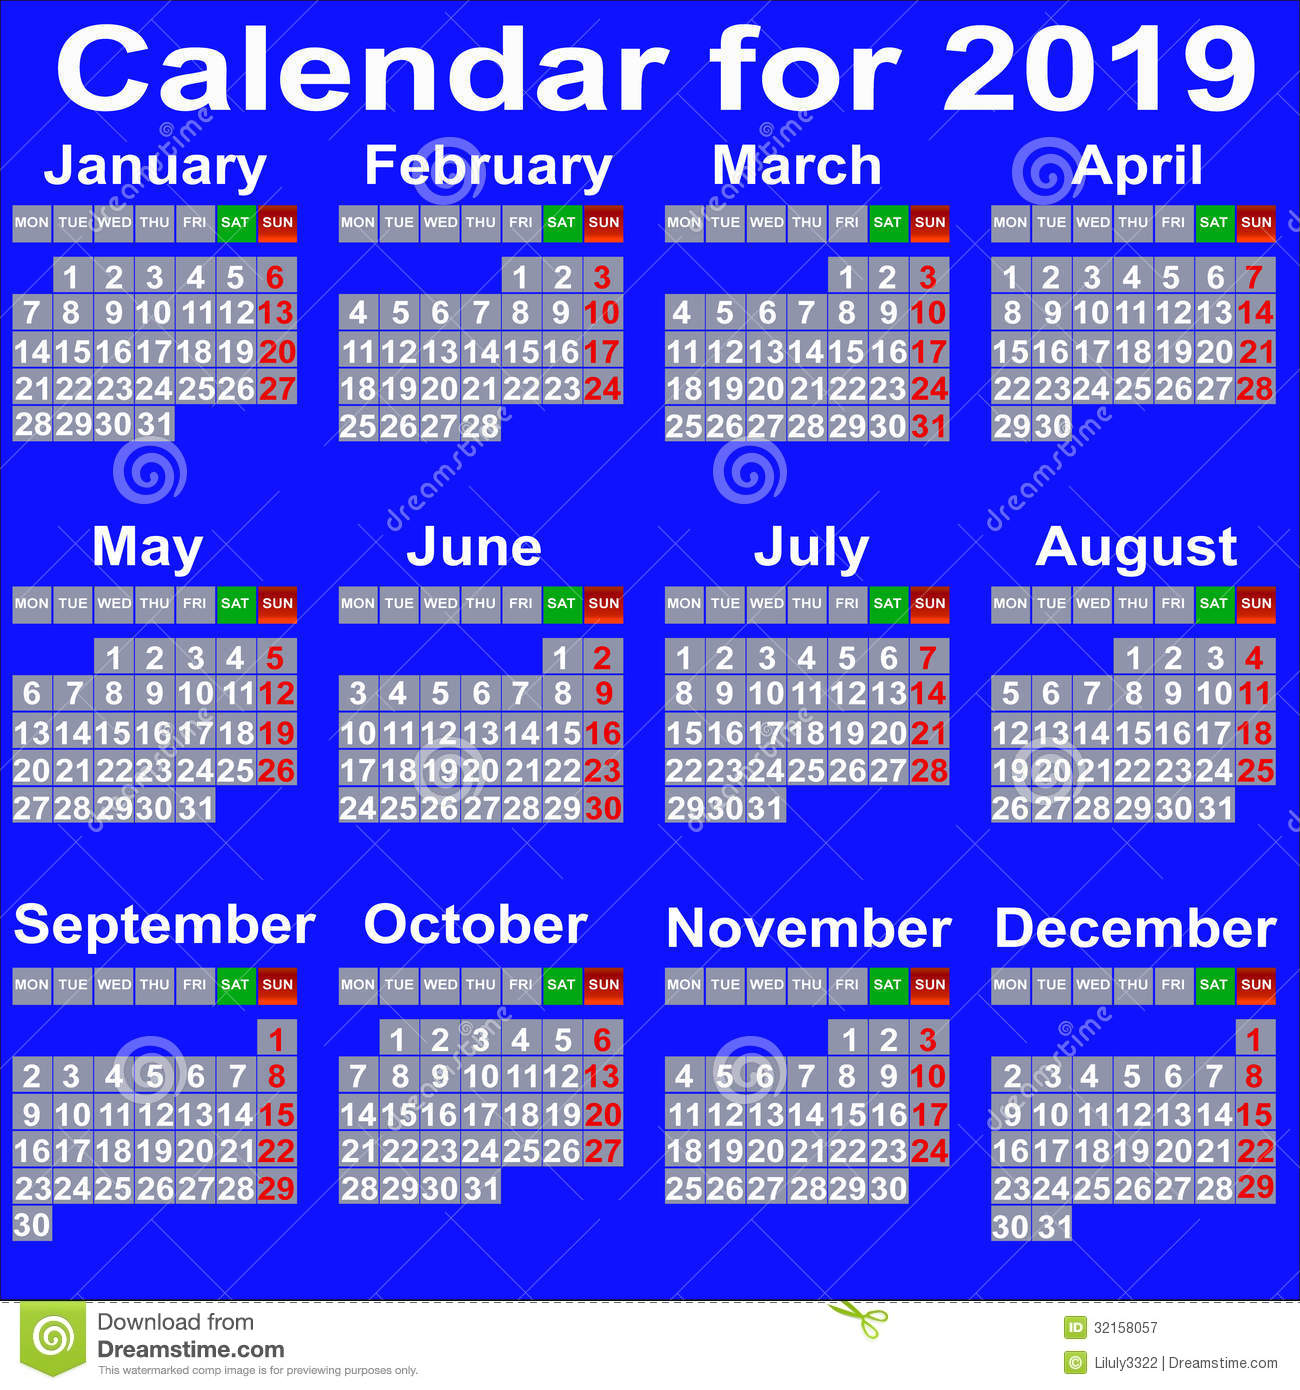 Calendar For 2019 Year. Royalty Free Stock Photography